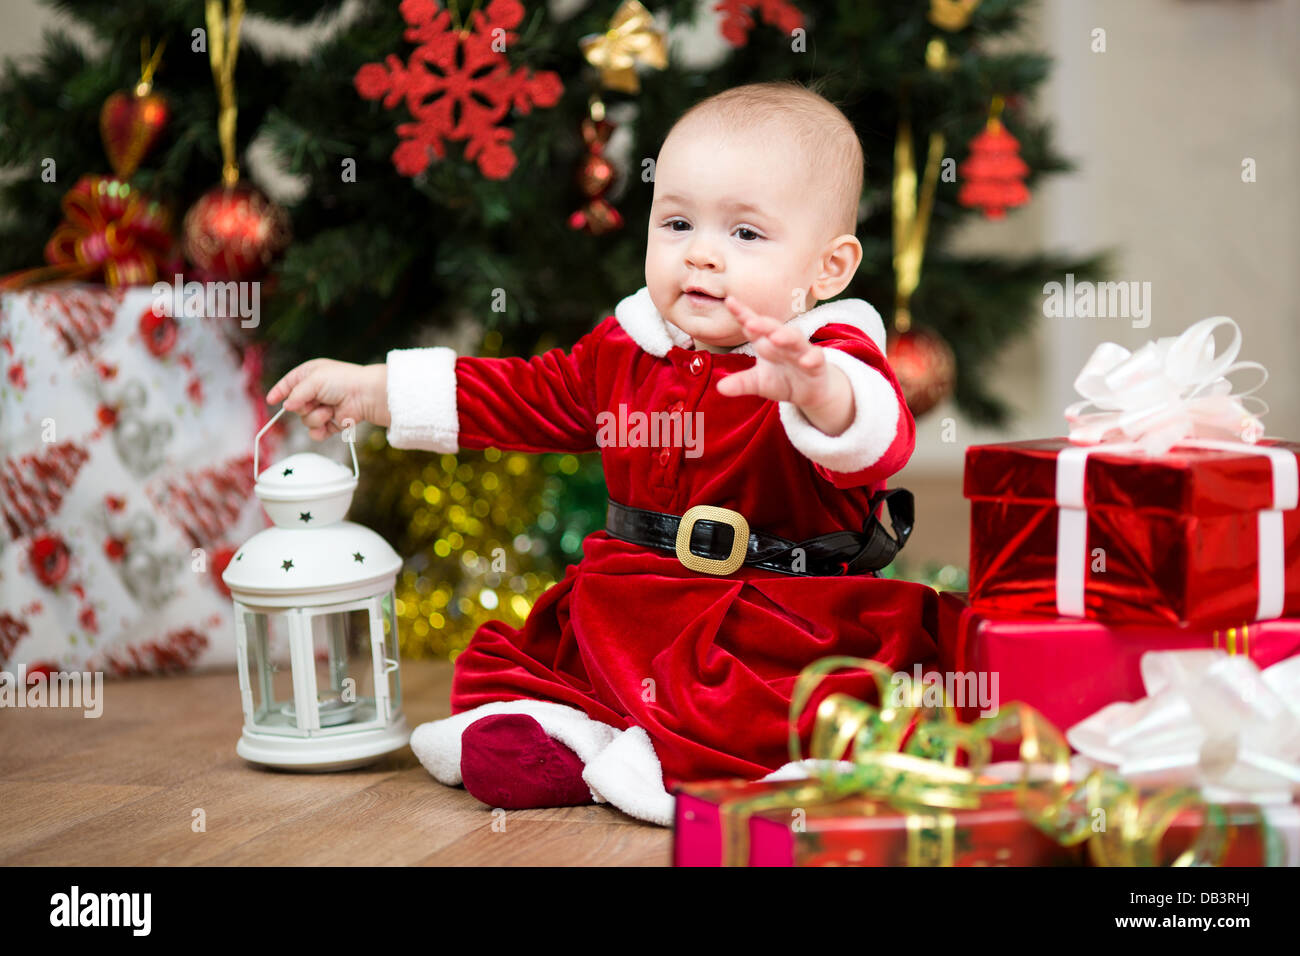 baby girl dressed as Santa Claus in front of Christmas tree with ...